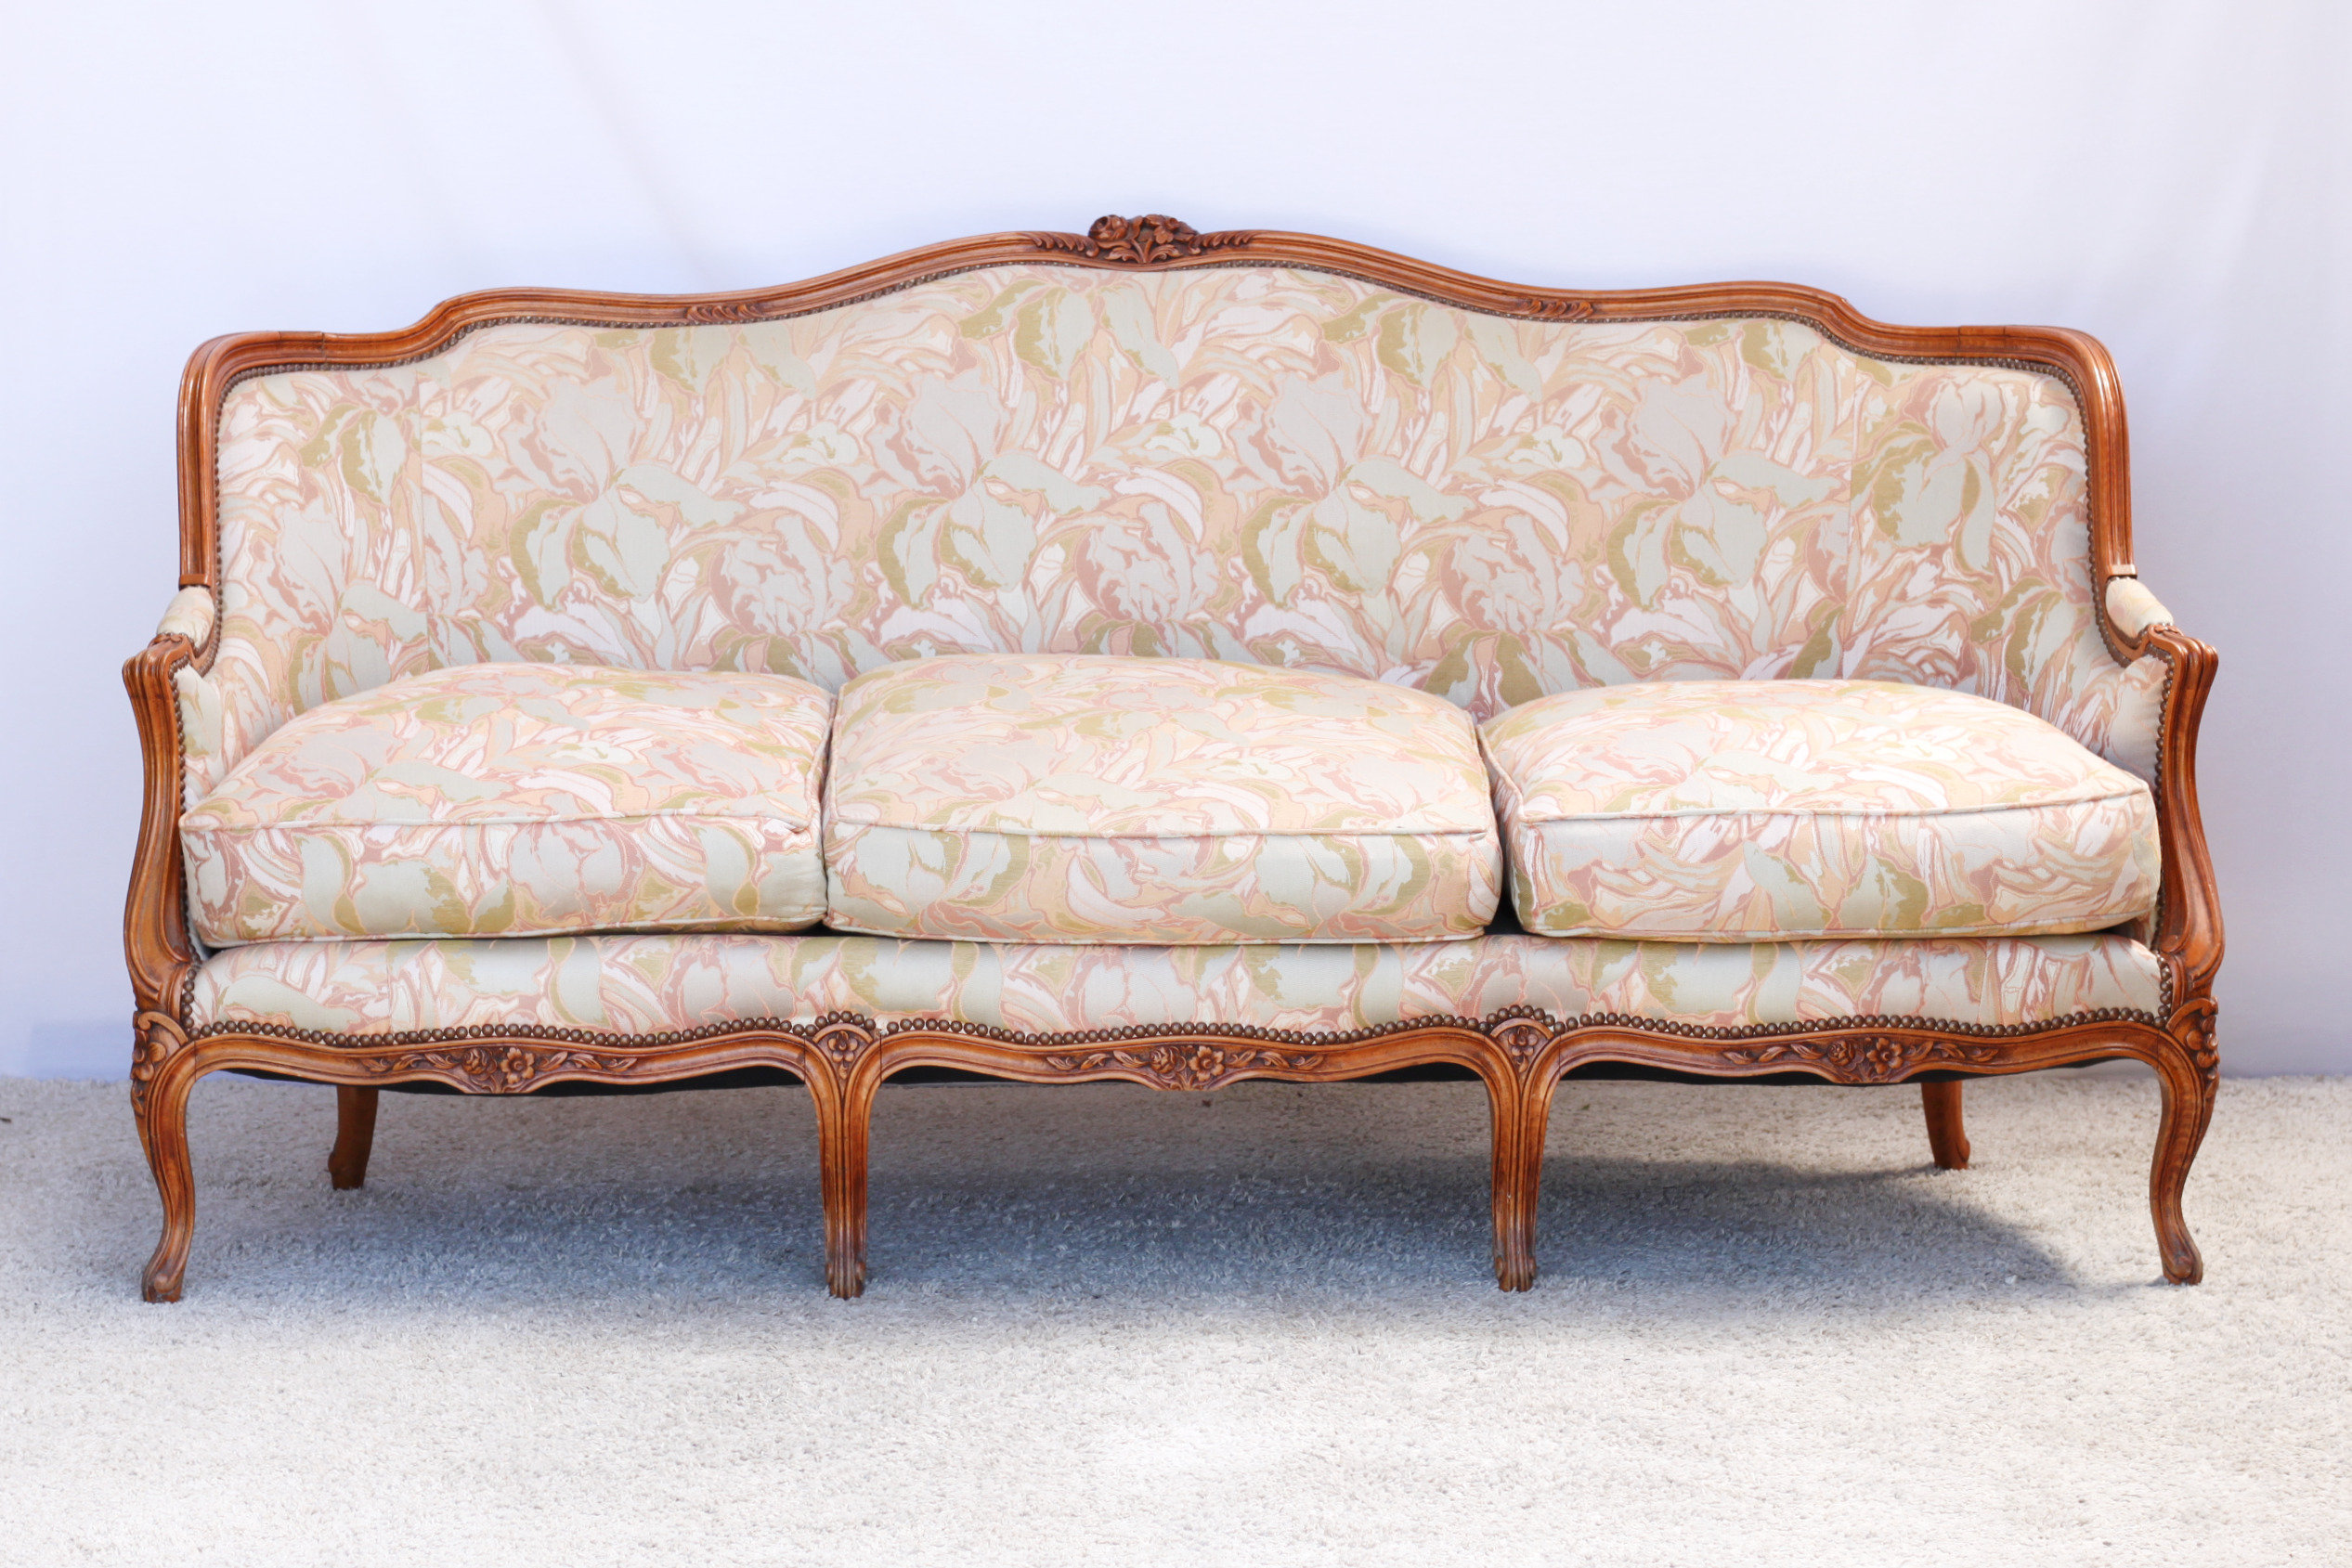 Louis Xiv Style Cherrywood Canape Sofa All Things French